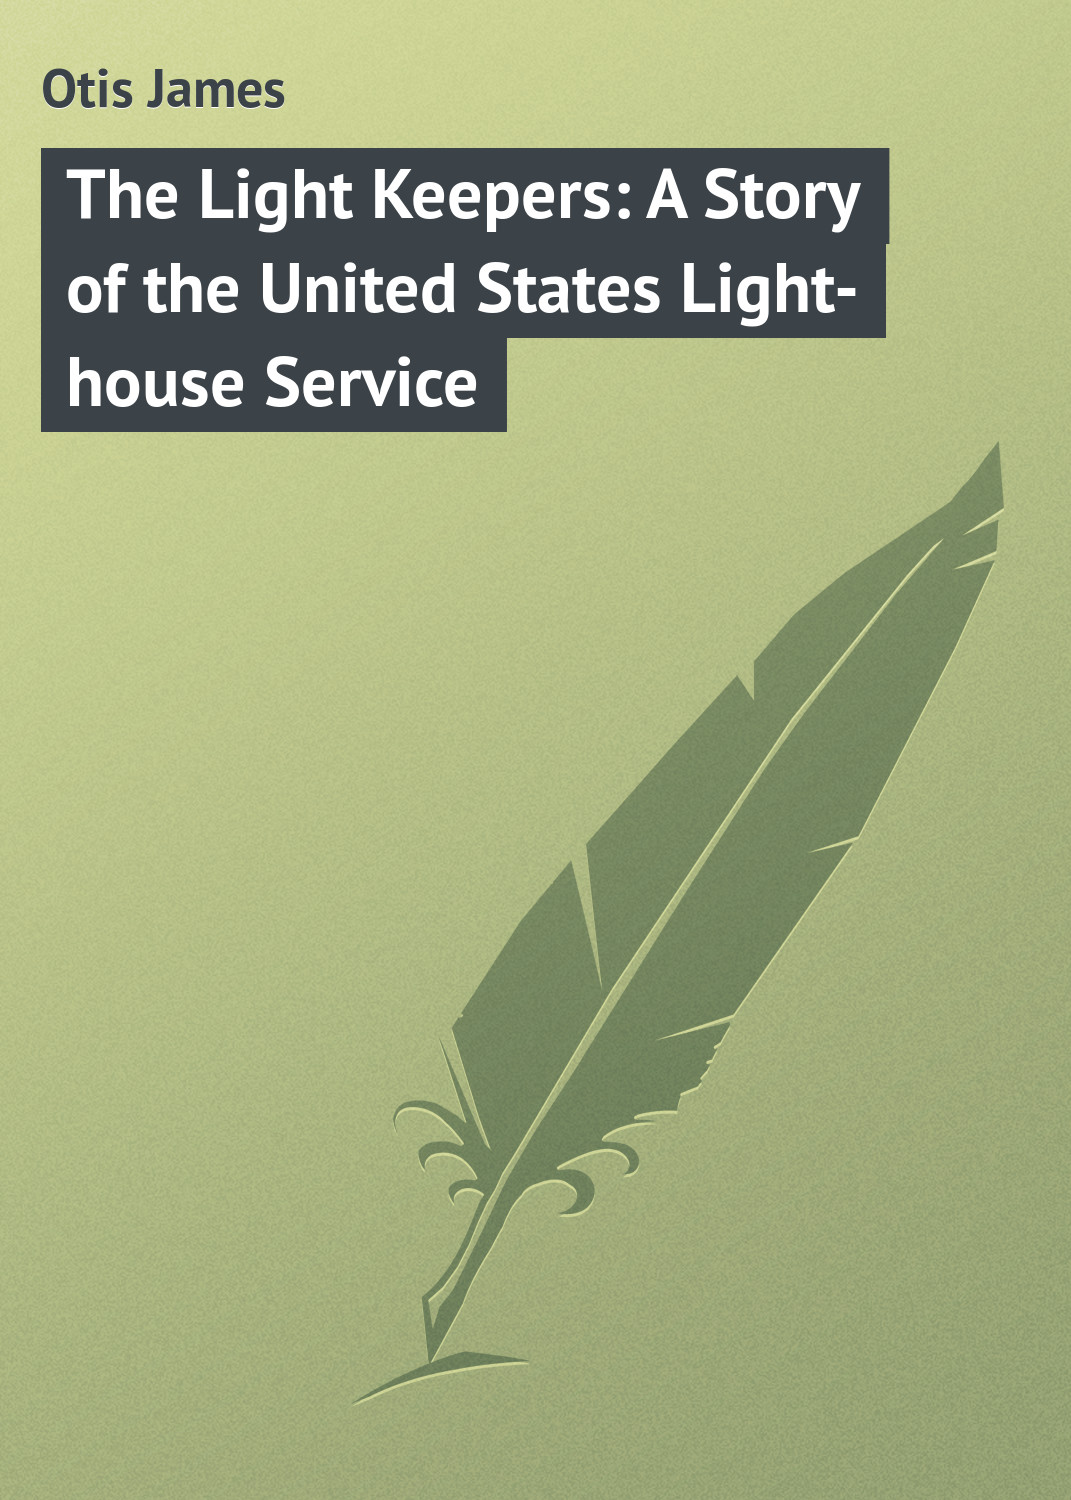 Otis James The Light Keepers: A Story of the United States Light-house Service [zob] the united states bussmann nh2am 400nhm2b 400a 500v fuse fuse original authentic